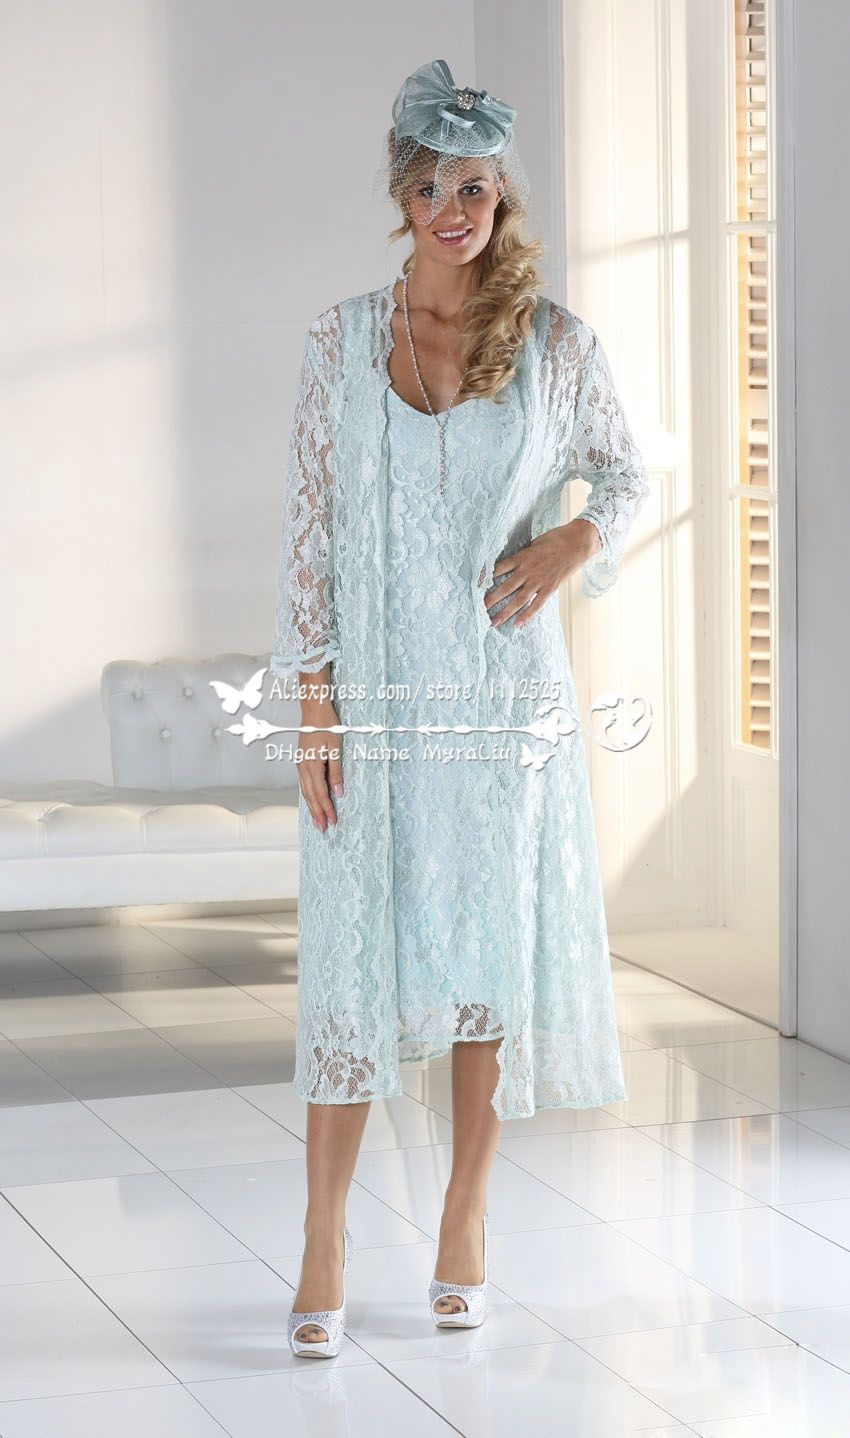 Cheap dress legs Buy Quality dress ed directly from China dress up